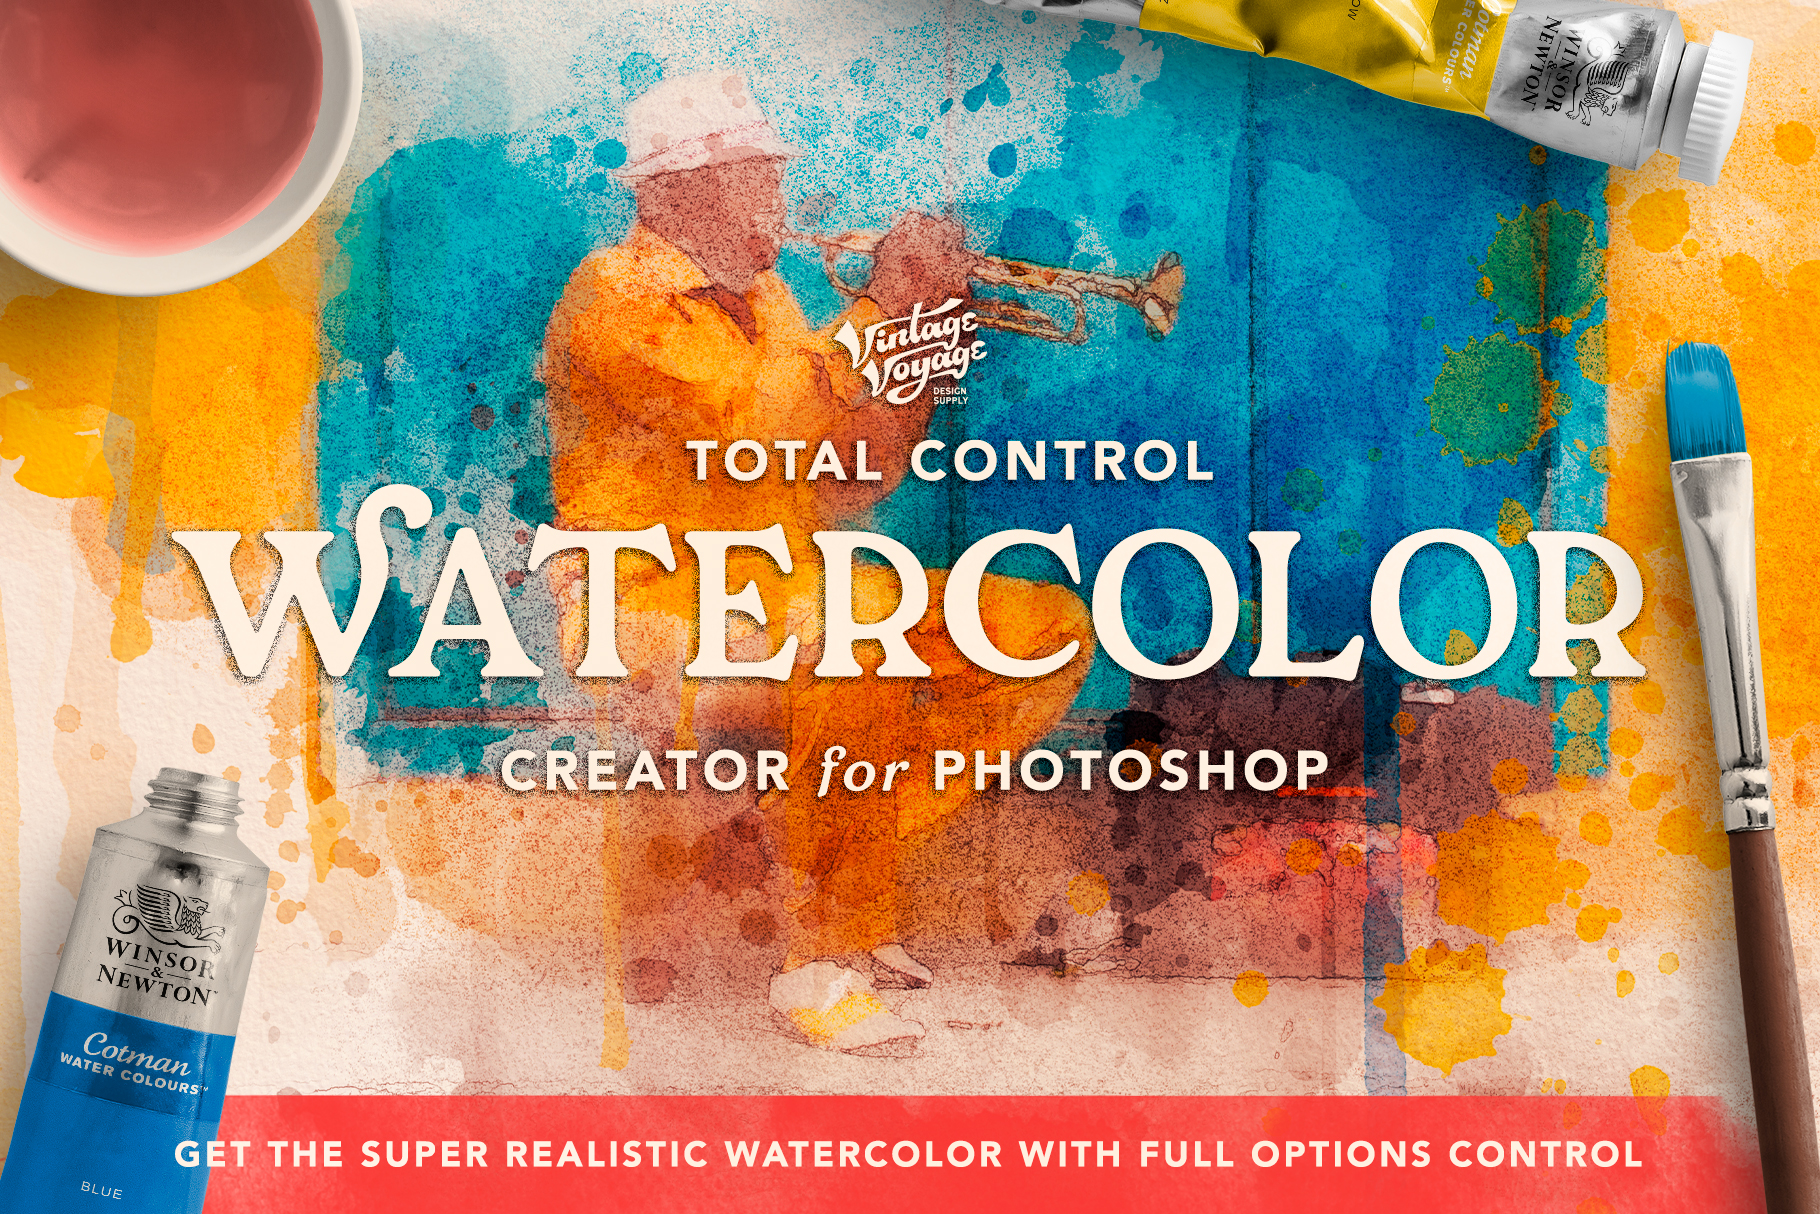 Total Watercolor Creator